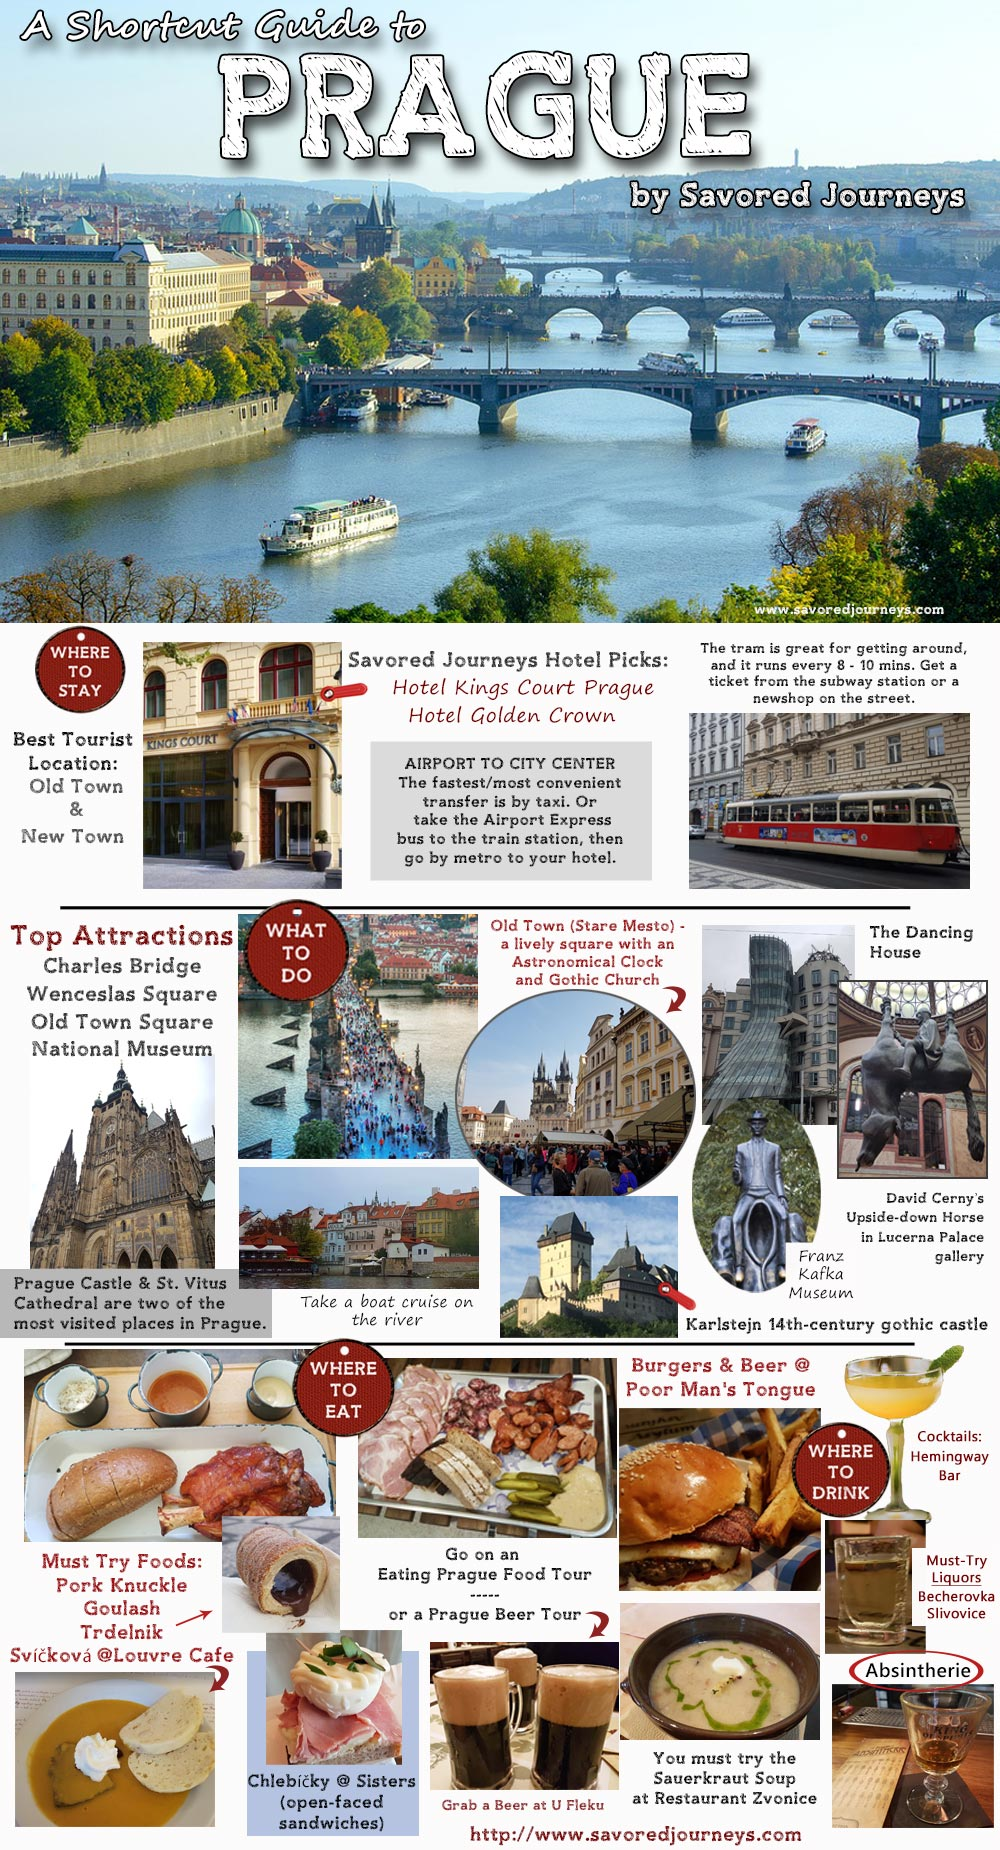 Travel Guide to Prague